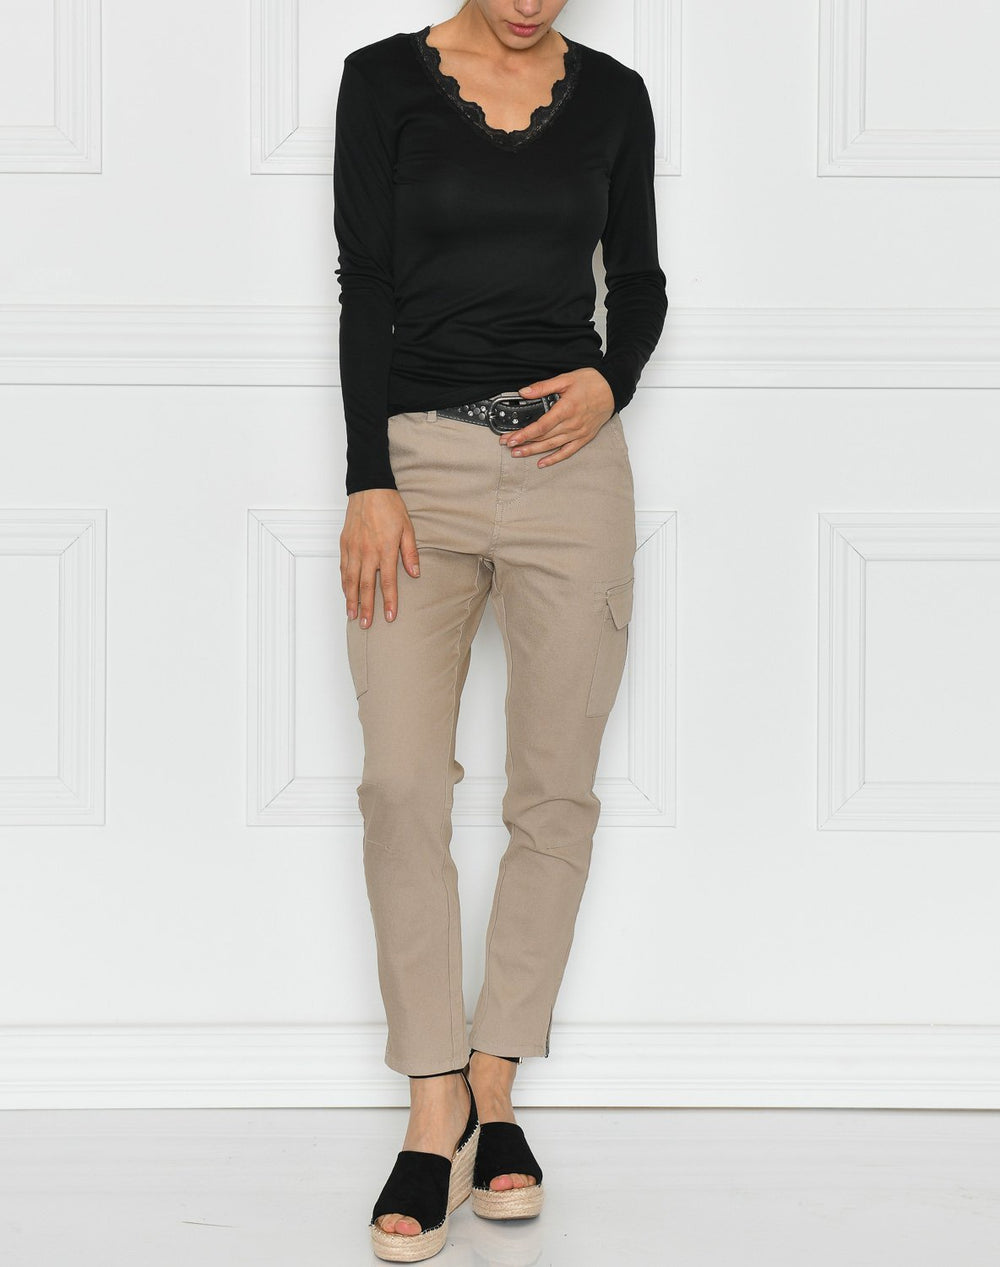 Kaffe KAmandy cropped pants cobbelstone - Online-Mode